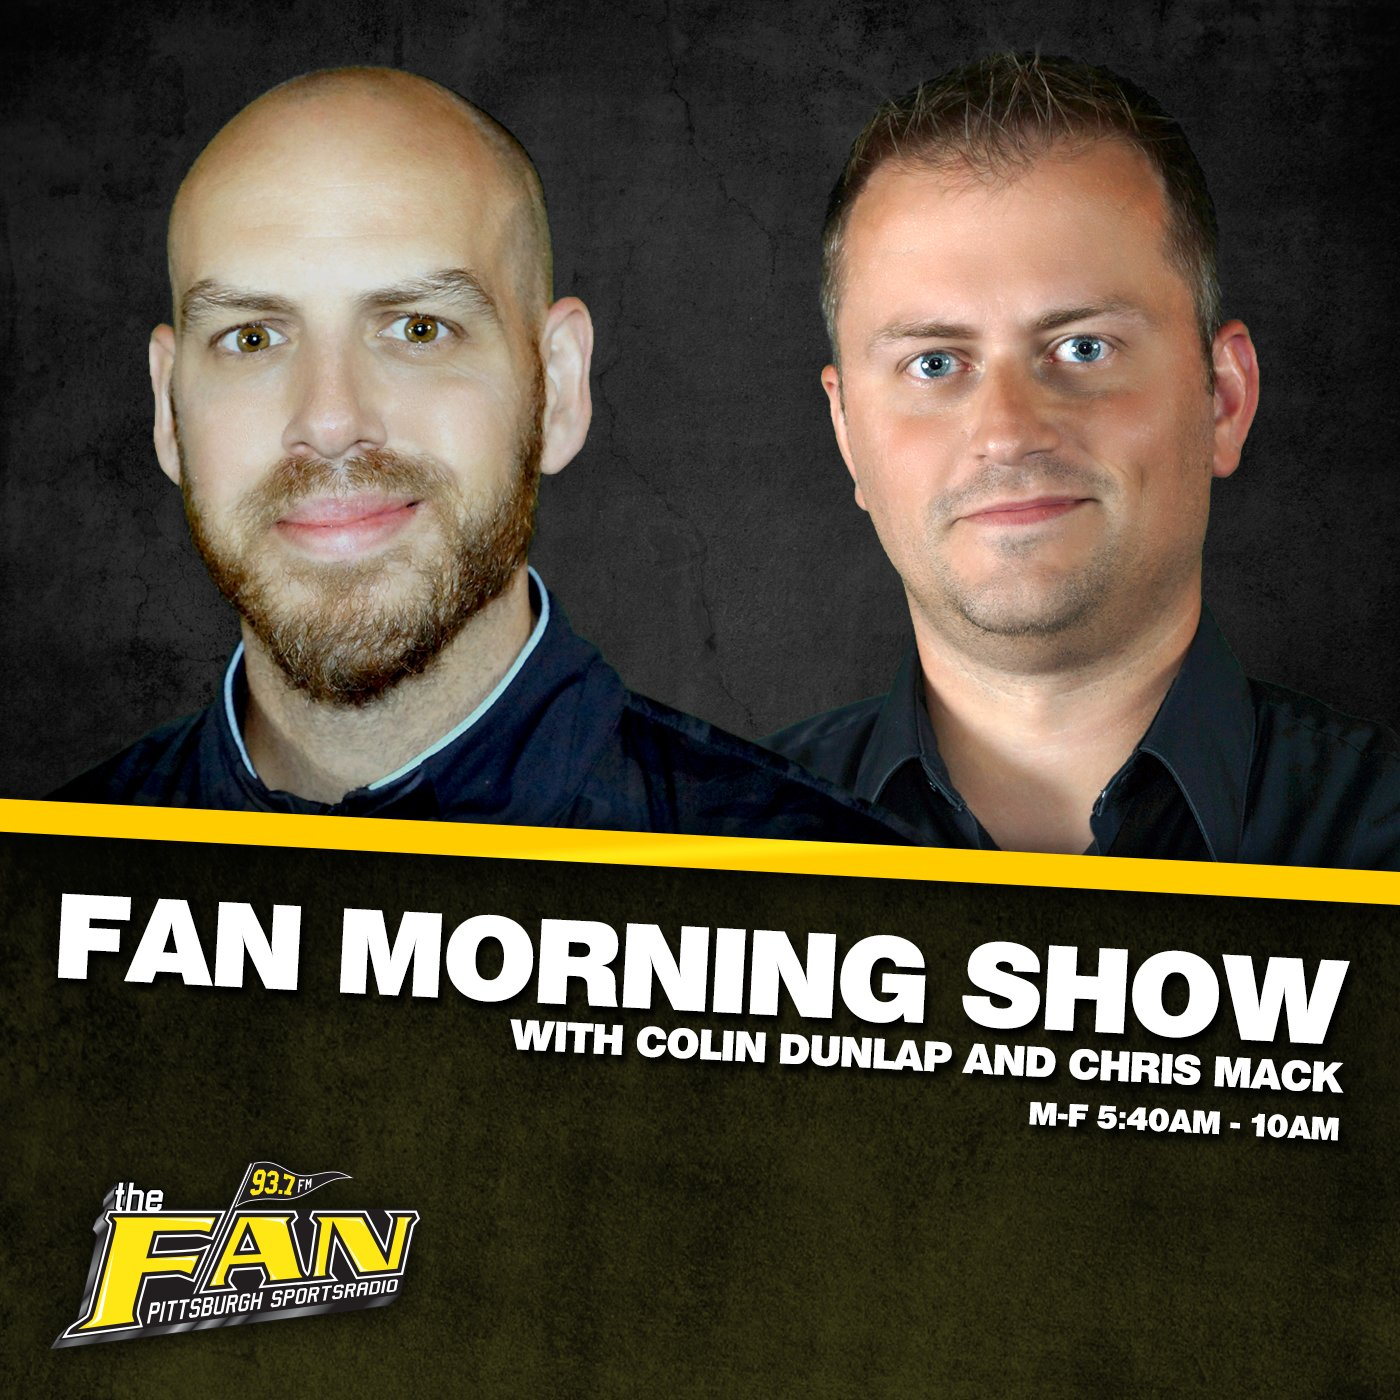 The Fan Morning Show